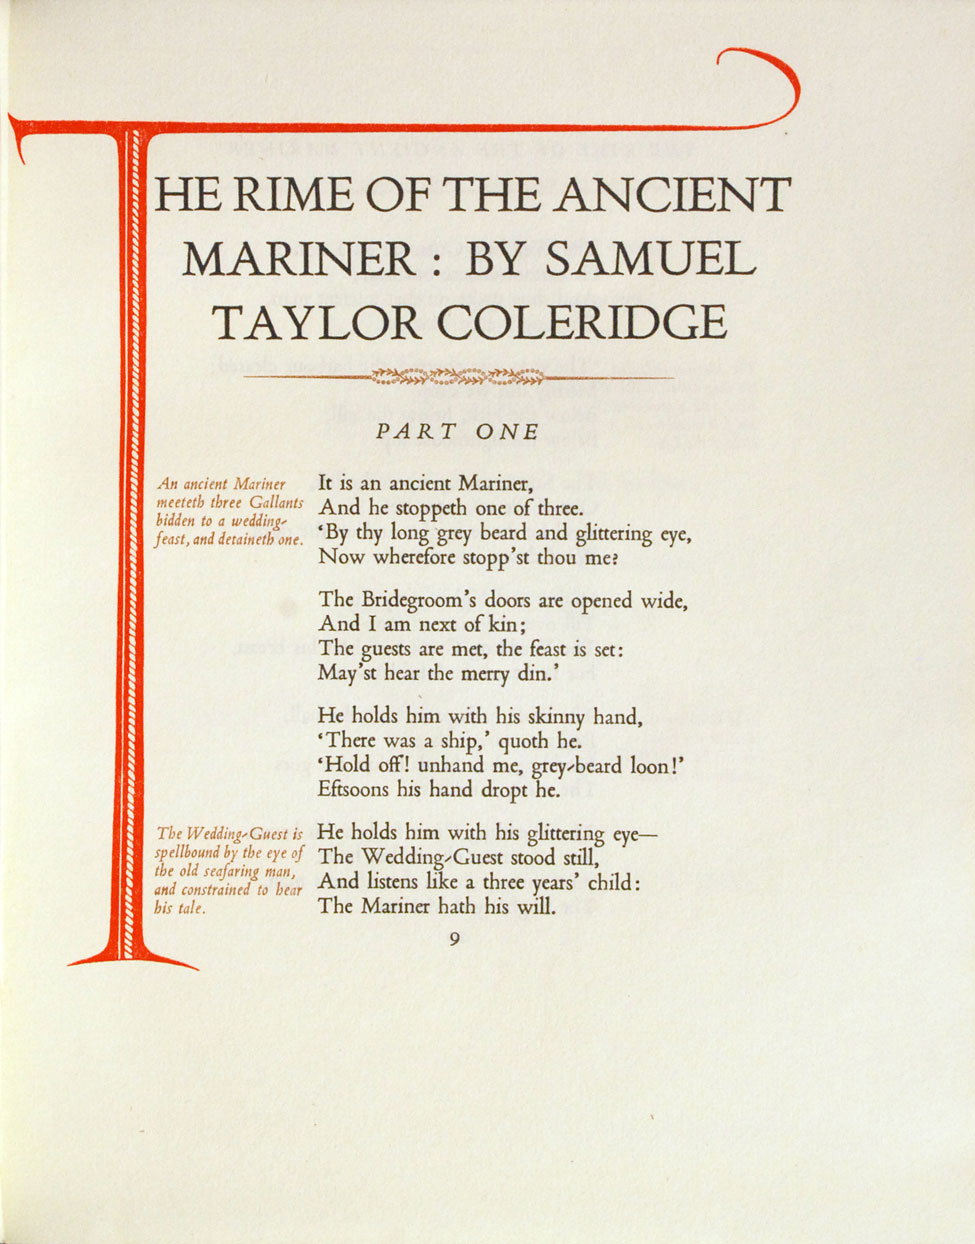 S. T. Coleridge. The Rime of the Ancient Mariner. <i>Christchurch: The Caxton Press, 1952.</i>